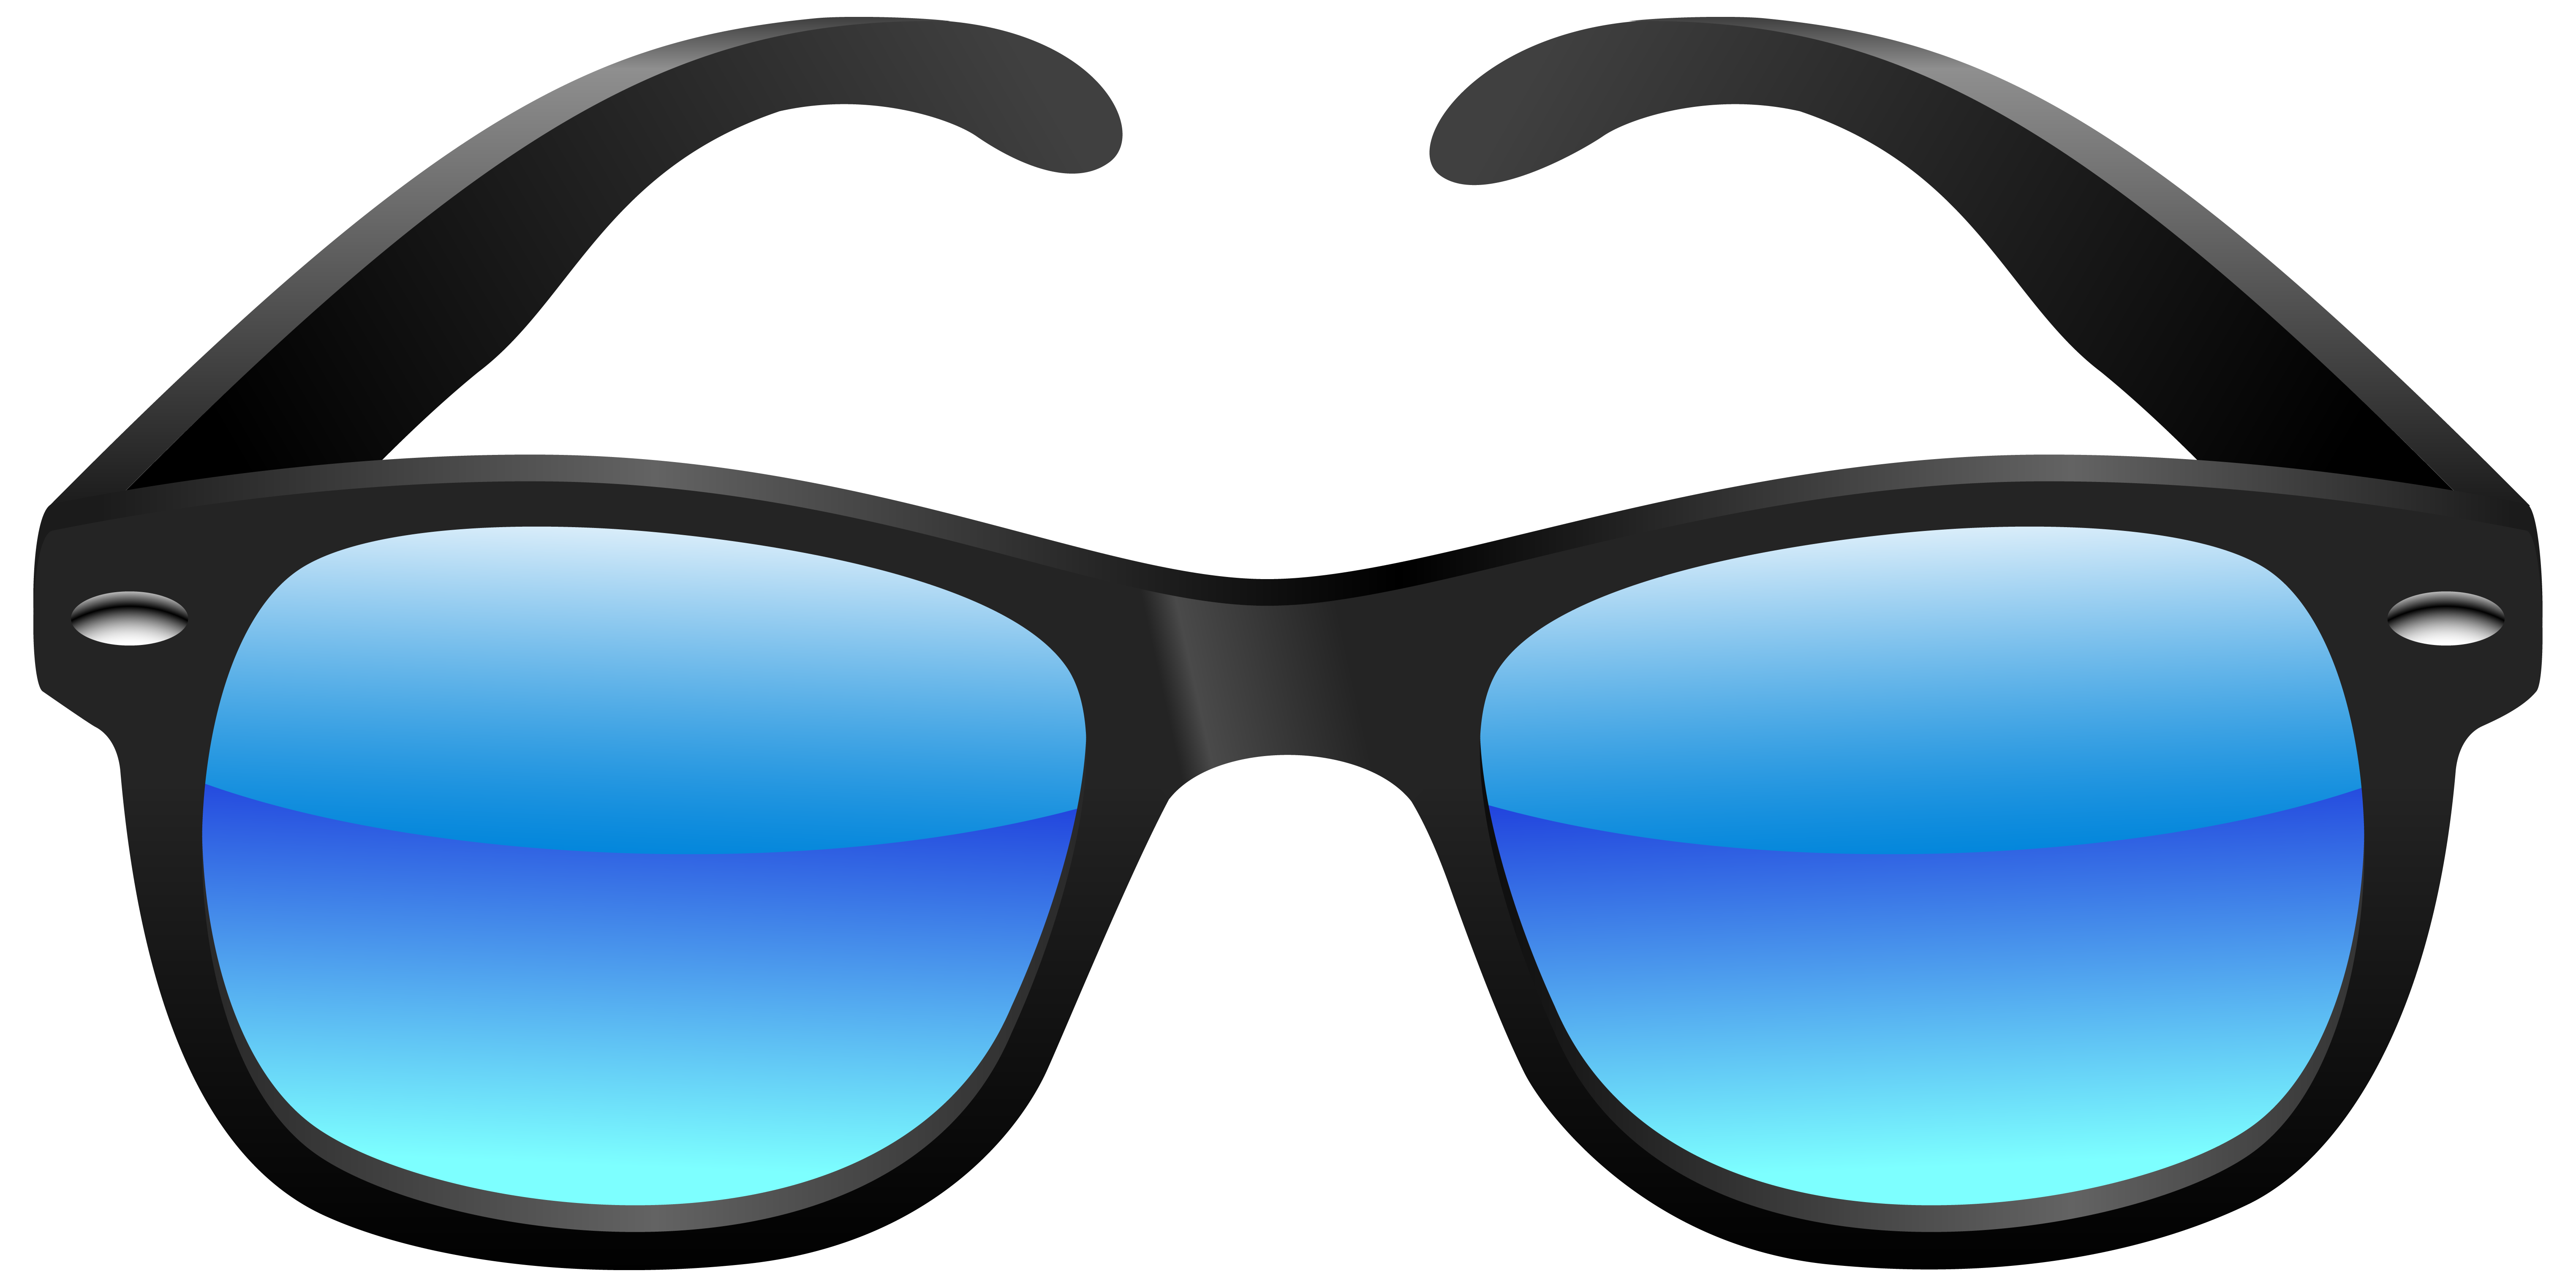 Sunglasses clipart #6, Download drawings